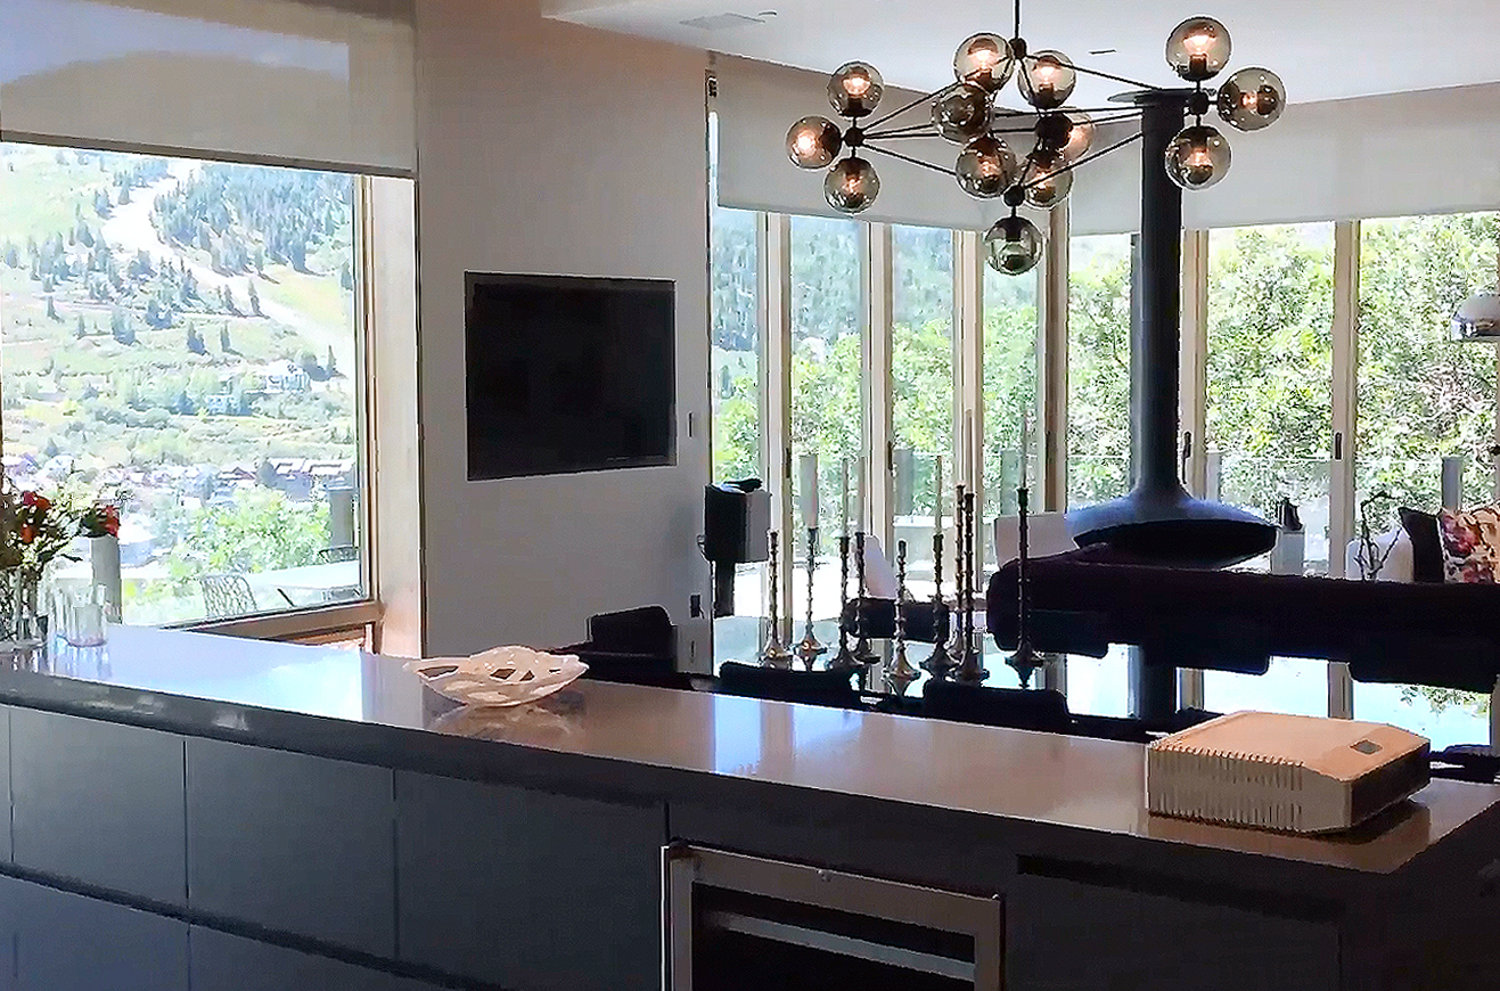 Automated Shades Harmonize with the Great Outdoors